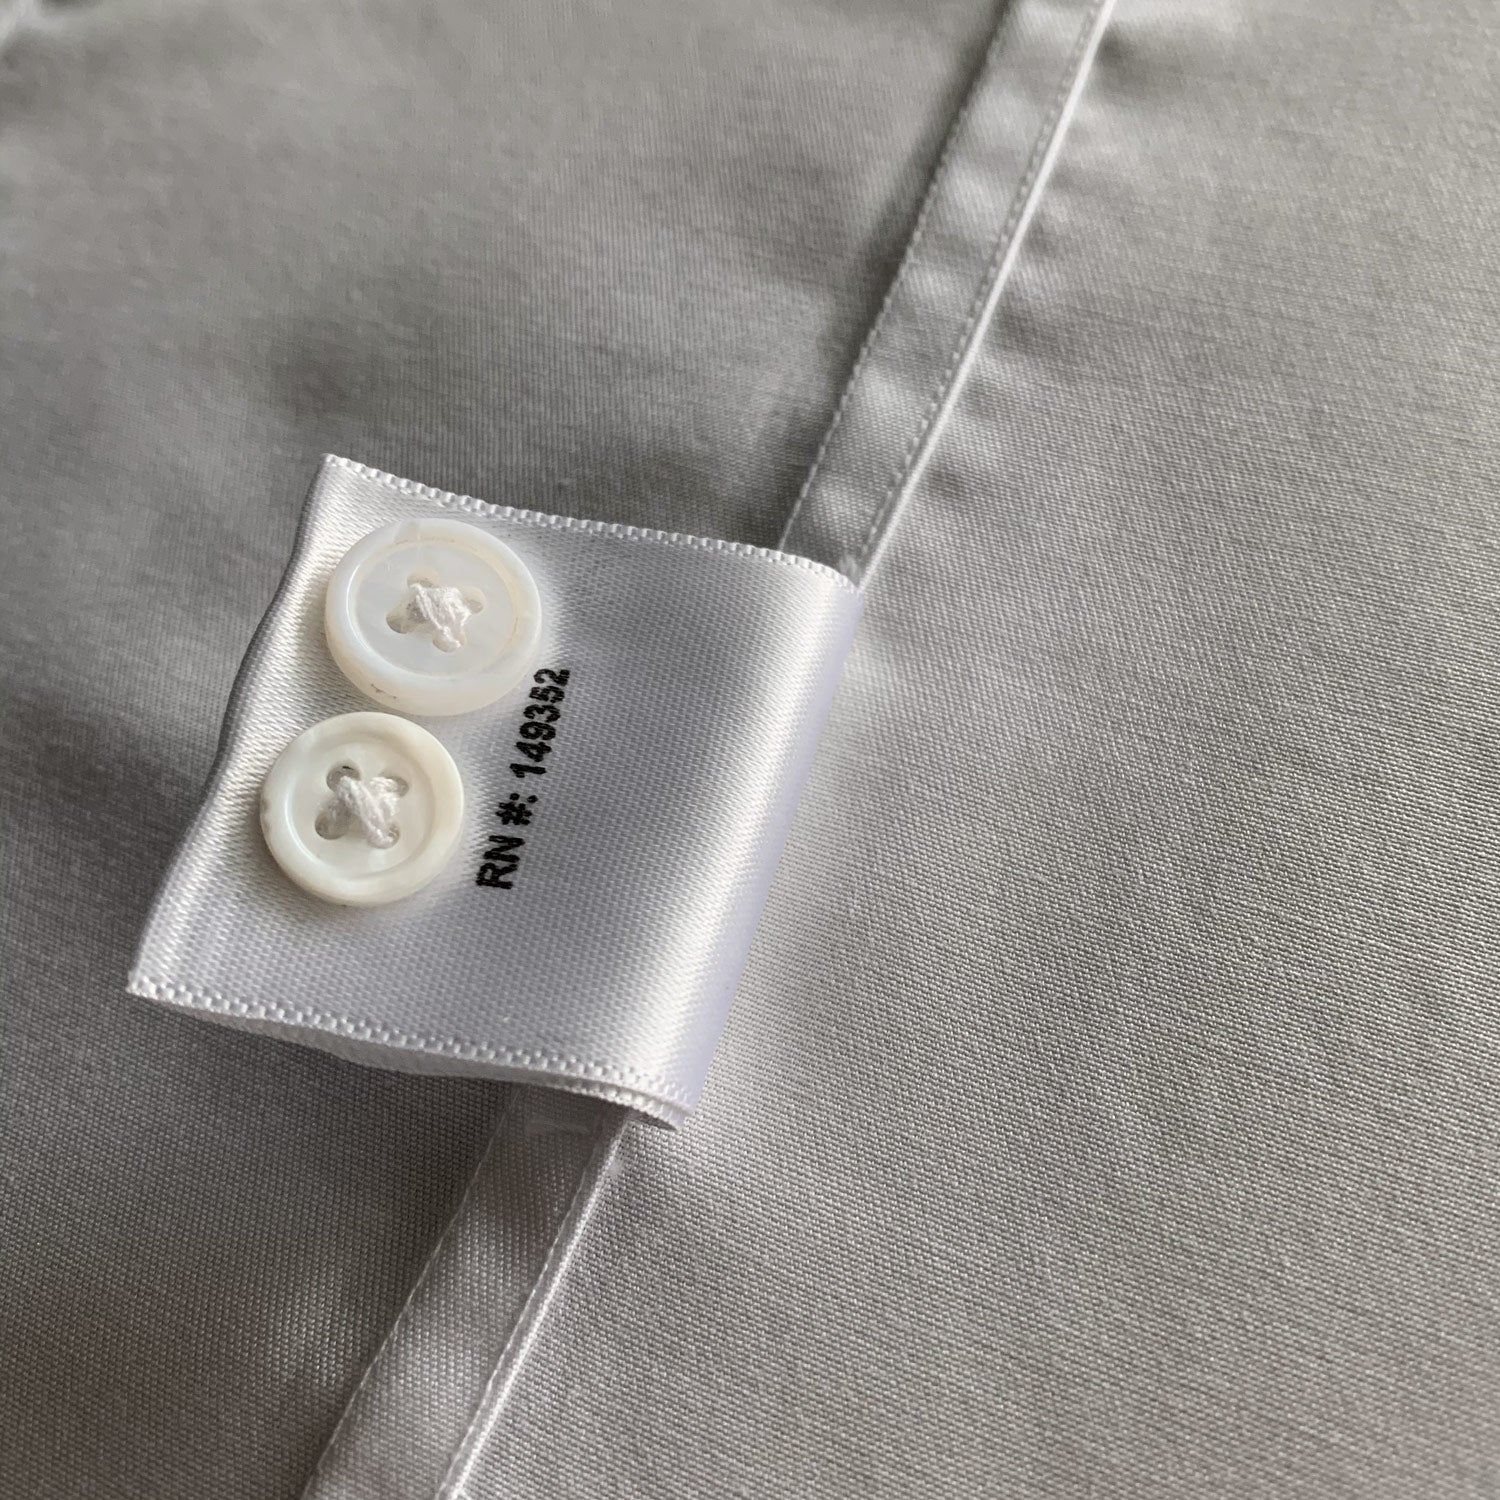 Spare buttons on high quality mens dress shirt